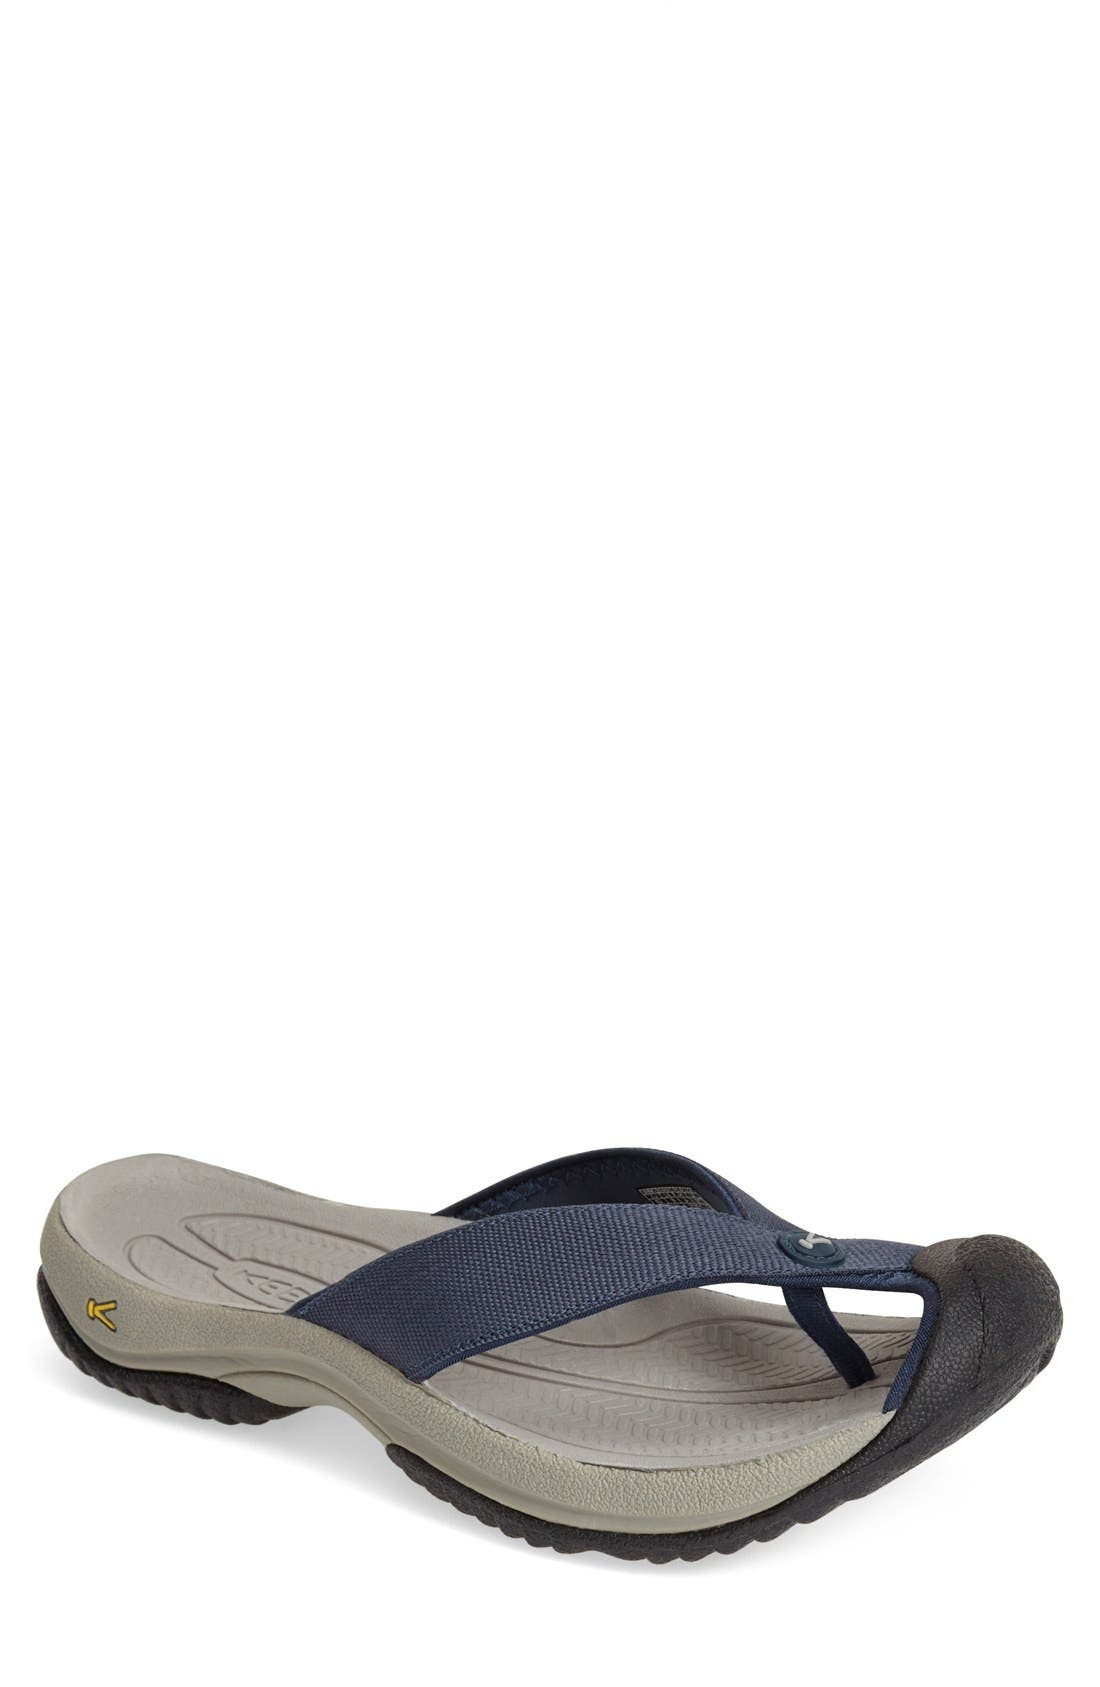 'Waimea H2' Water Thong Sandal,                         Main,                         color, Midnight Navy/ Neutral